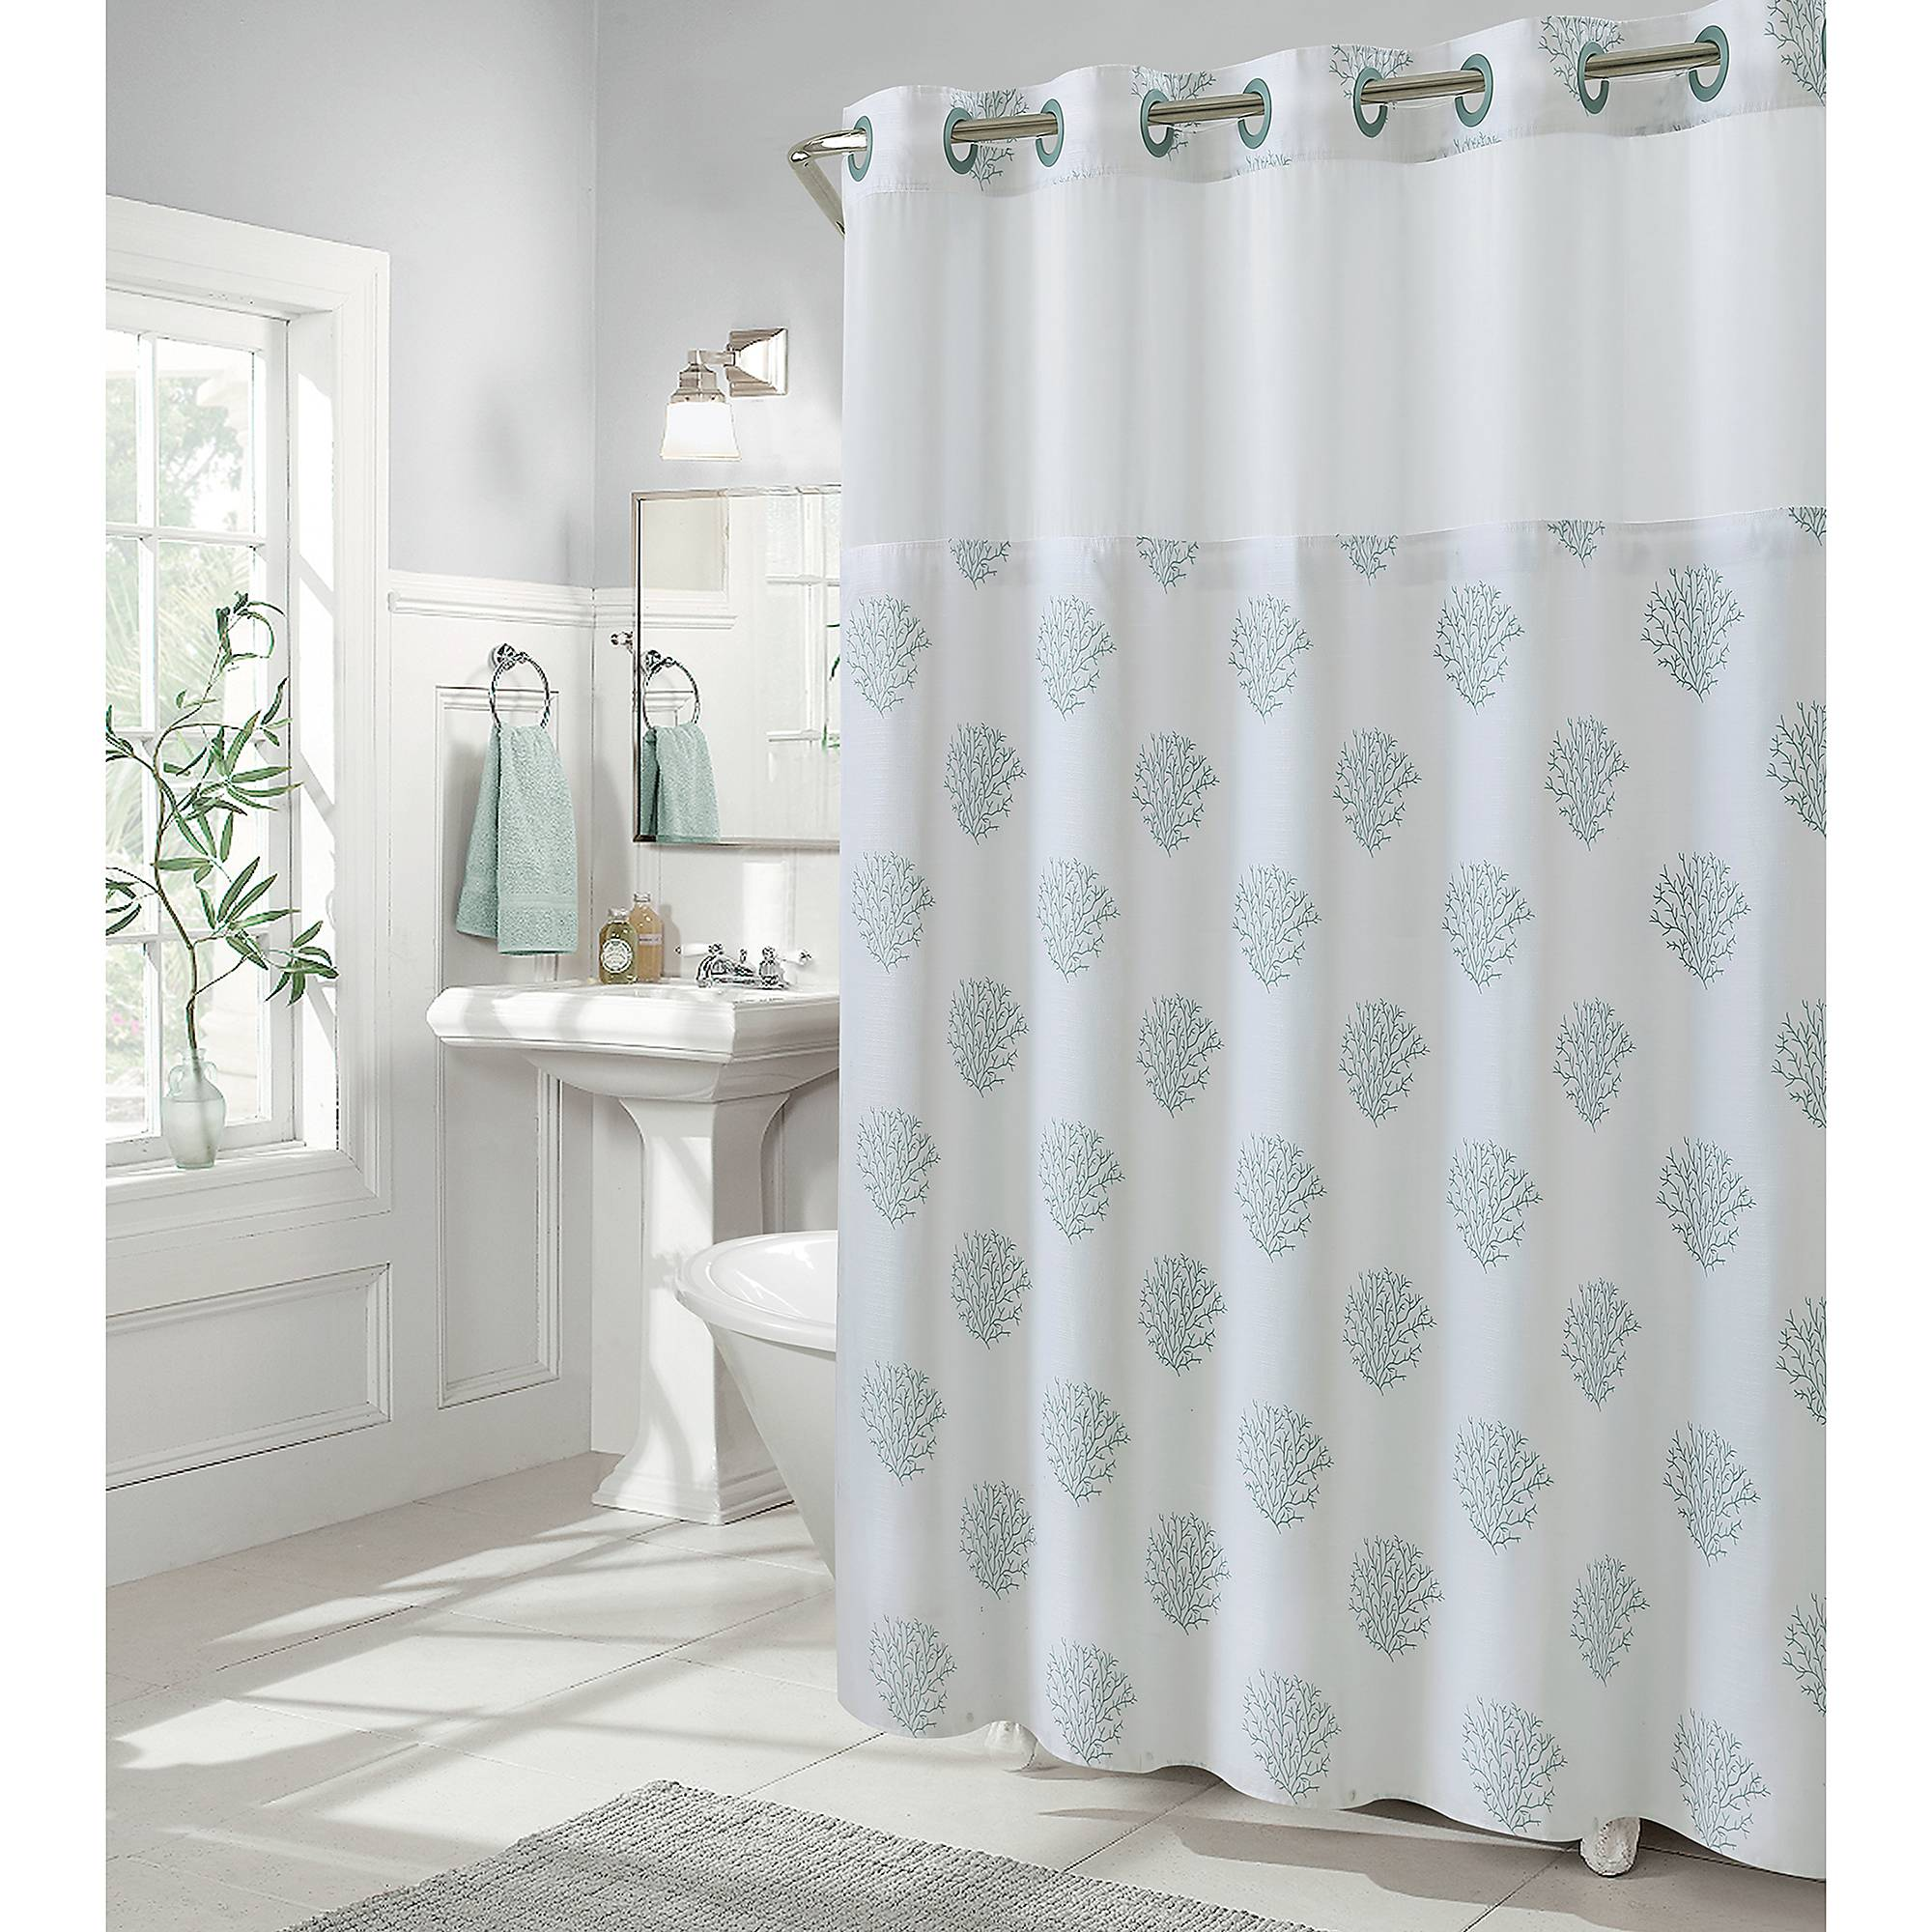 Details About Hookless Coral Reef 80 Inch X 54 Shower Curtain In Grey Mist